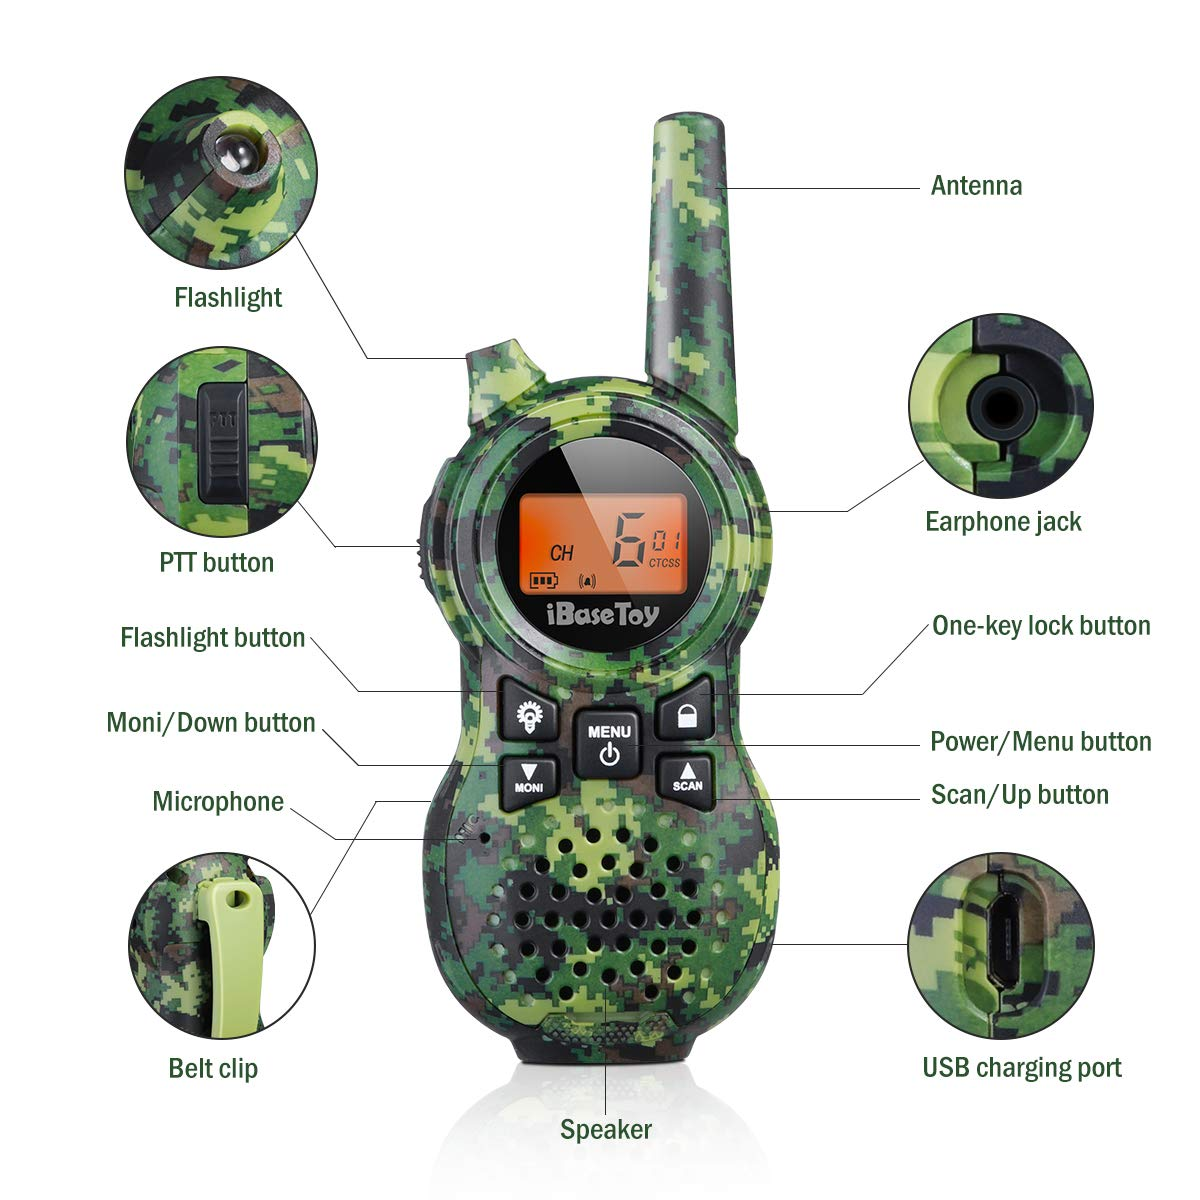 iBaseToy Walkie Talkies for Kids, Rechargeable Walkie Talkies with 22 Channels, 4-Miles Range Radio with Flashlight, LCD Screen and Charging line for Outdoor Adventures, Camping, Hiking - 2 Pack by iBaseToy (Image #3)